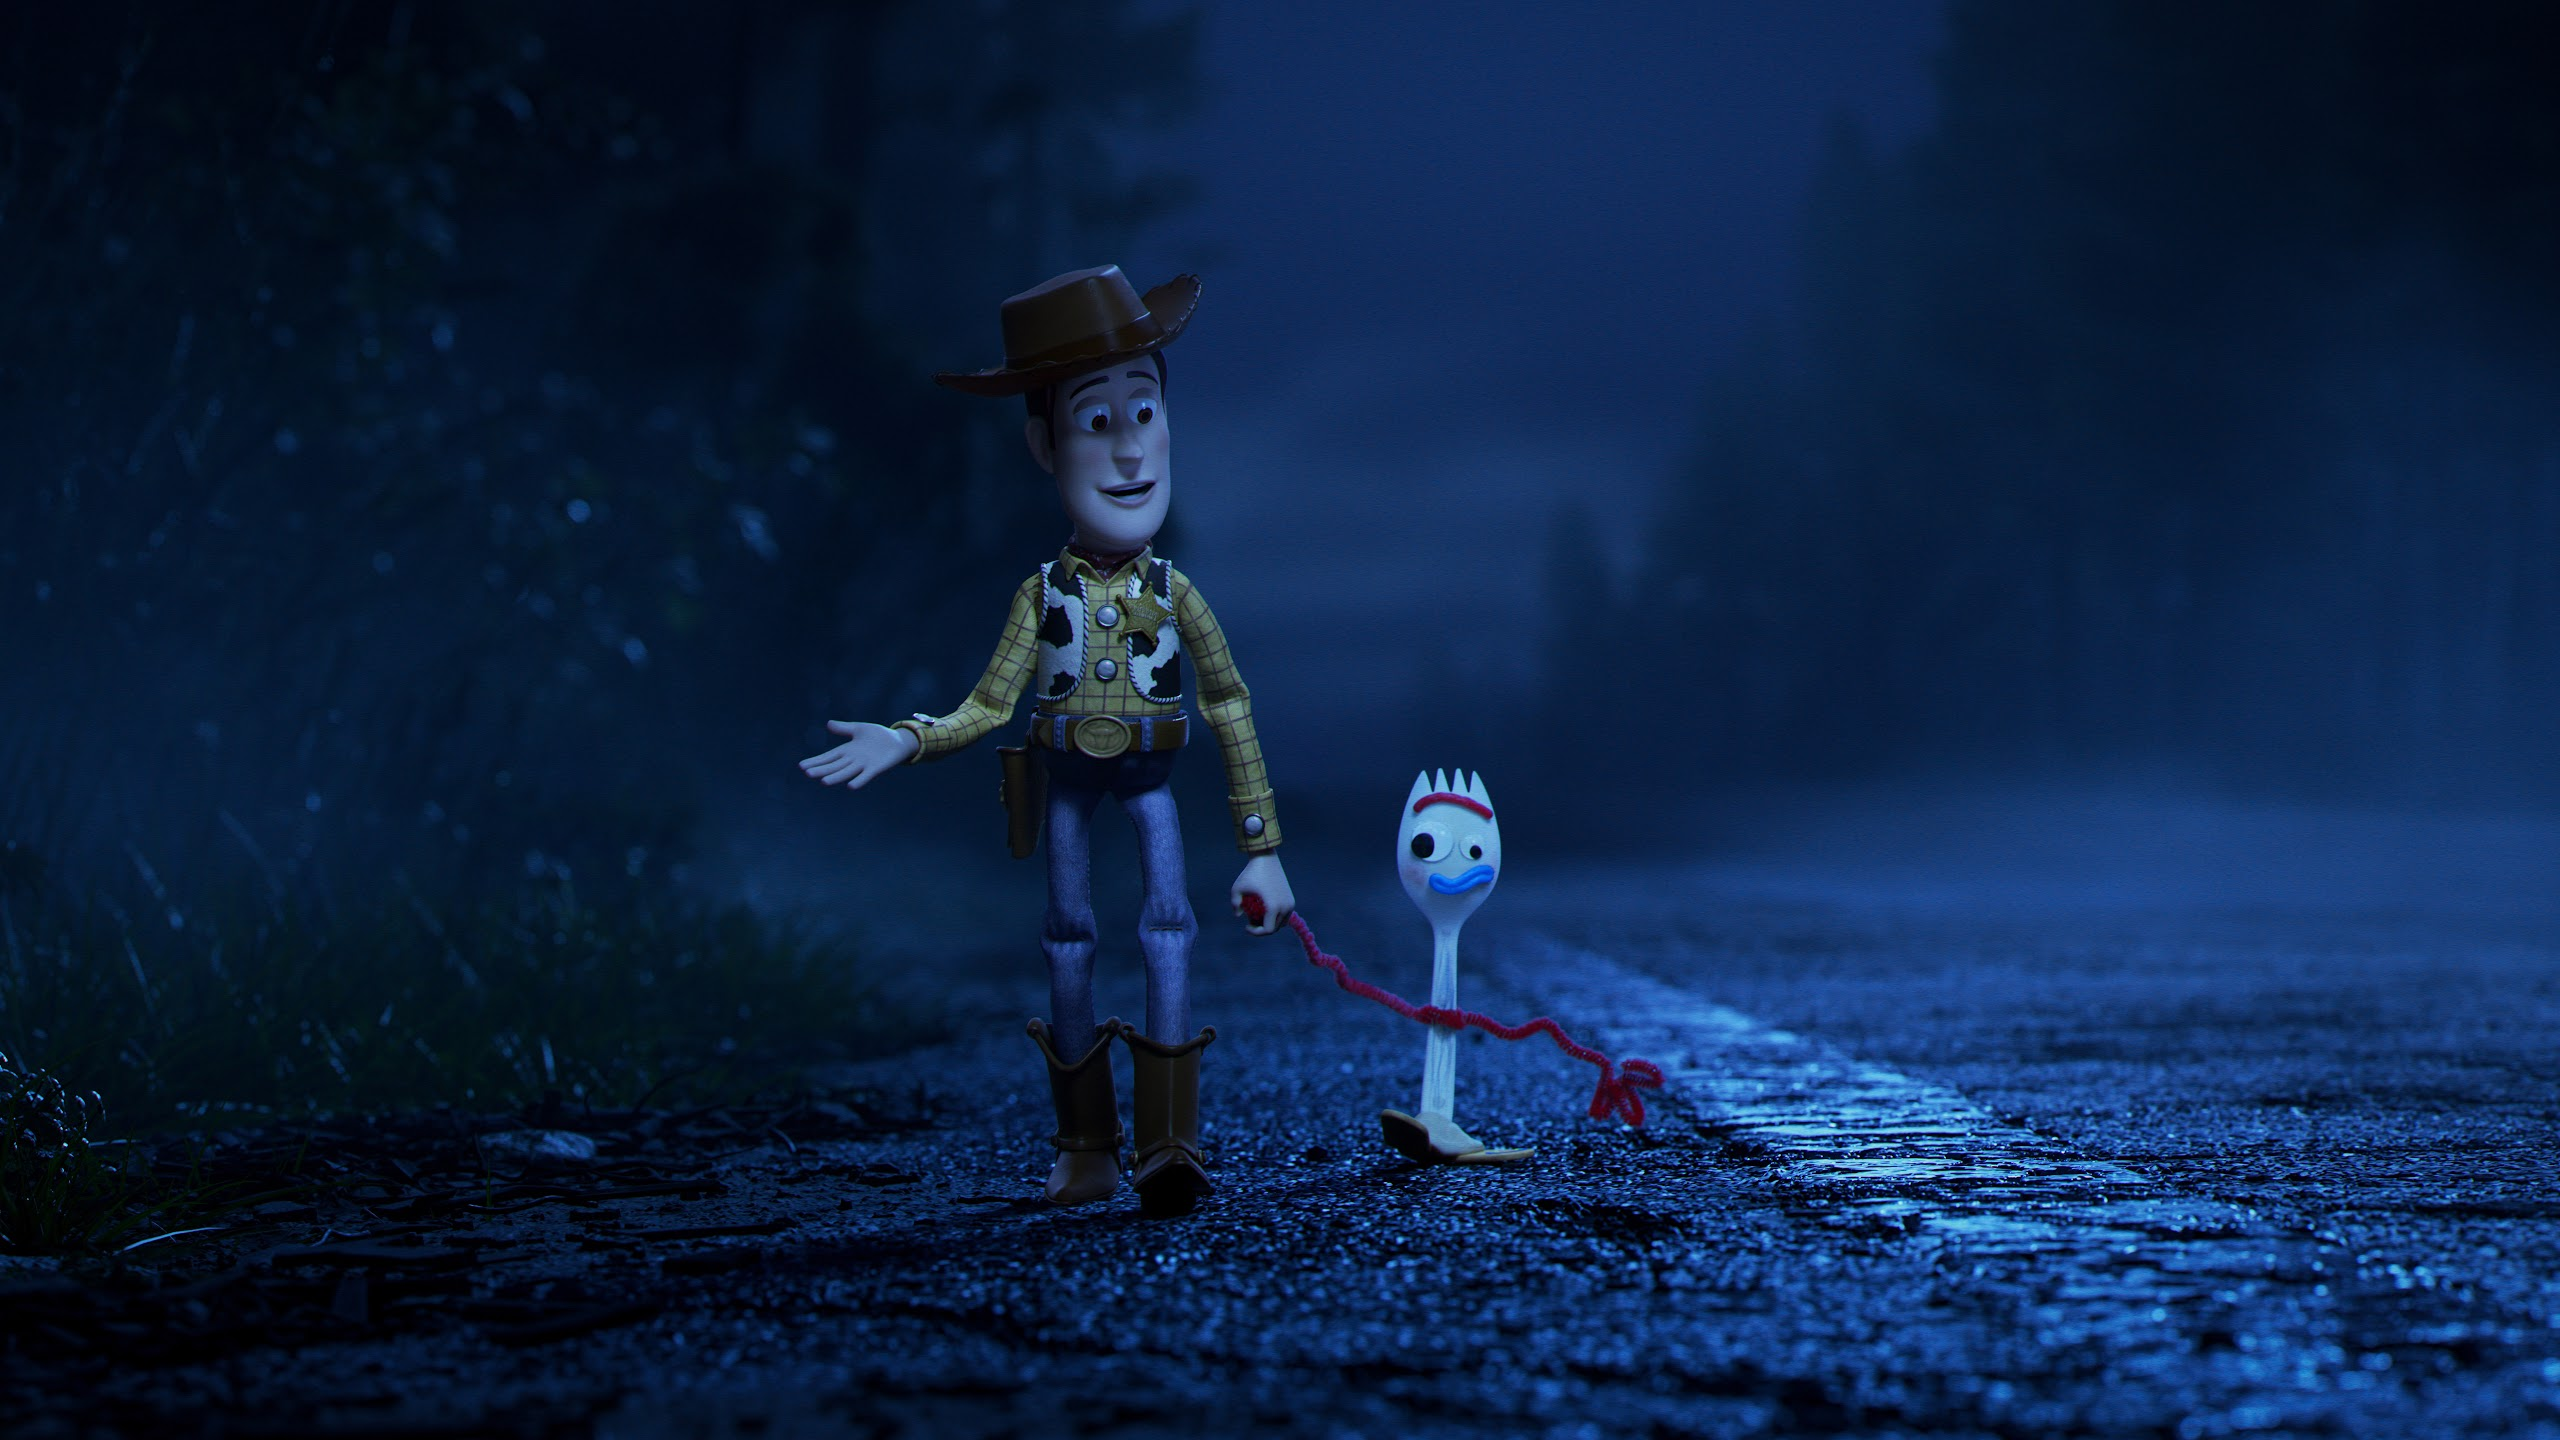 Toy Story 4 Woody And Forky 8k Wallpaper 13